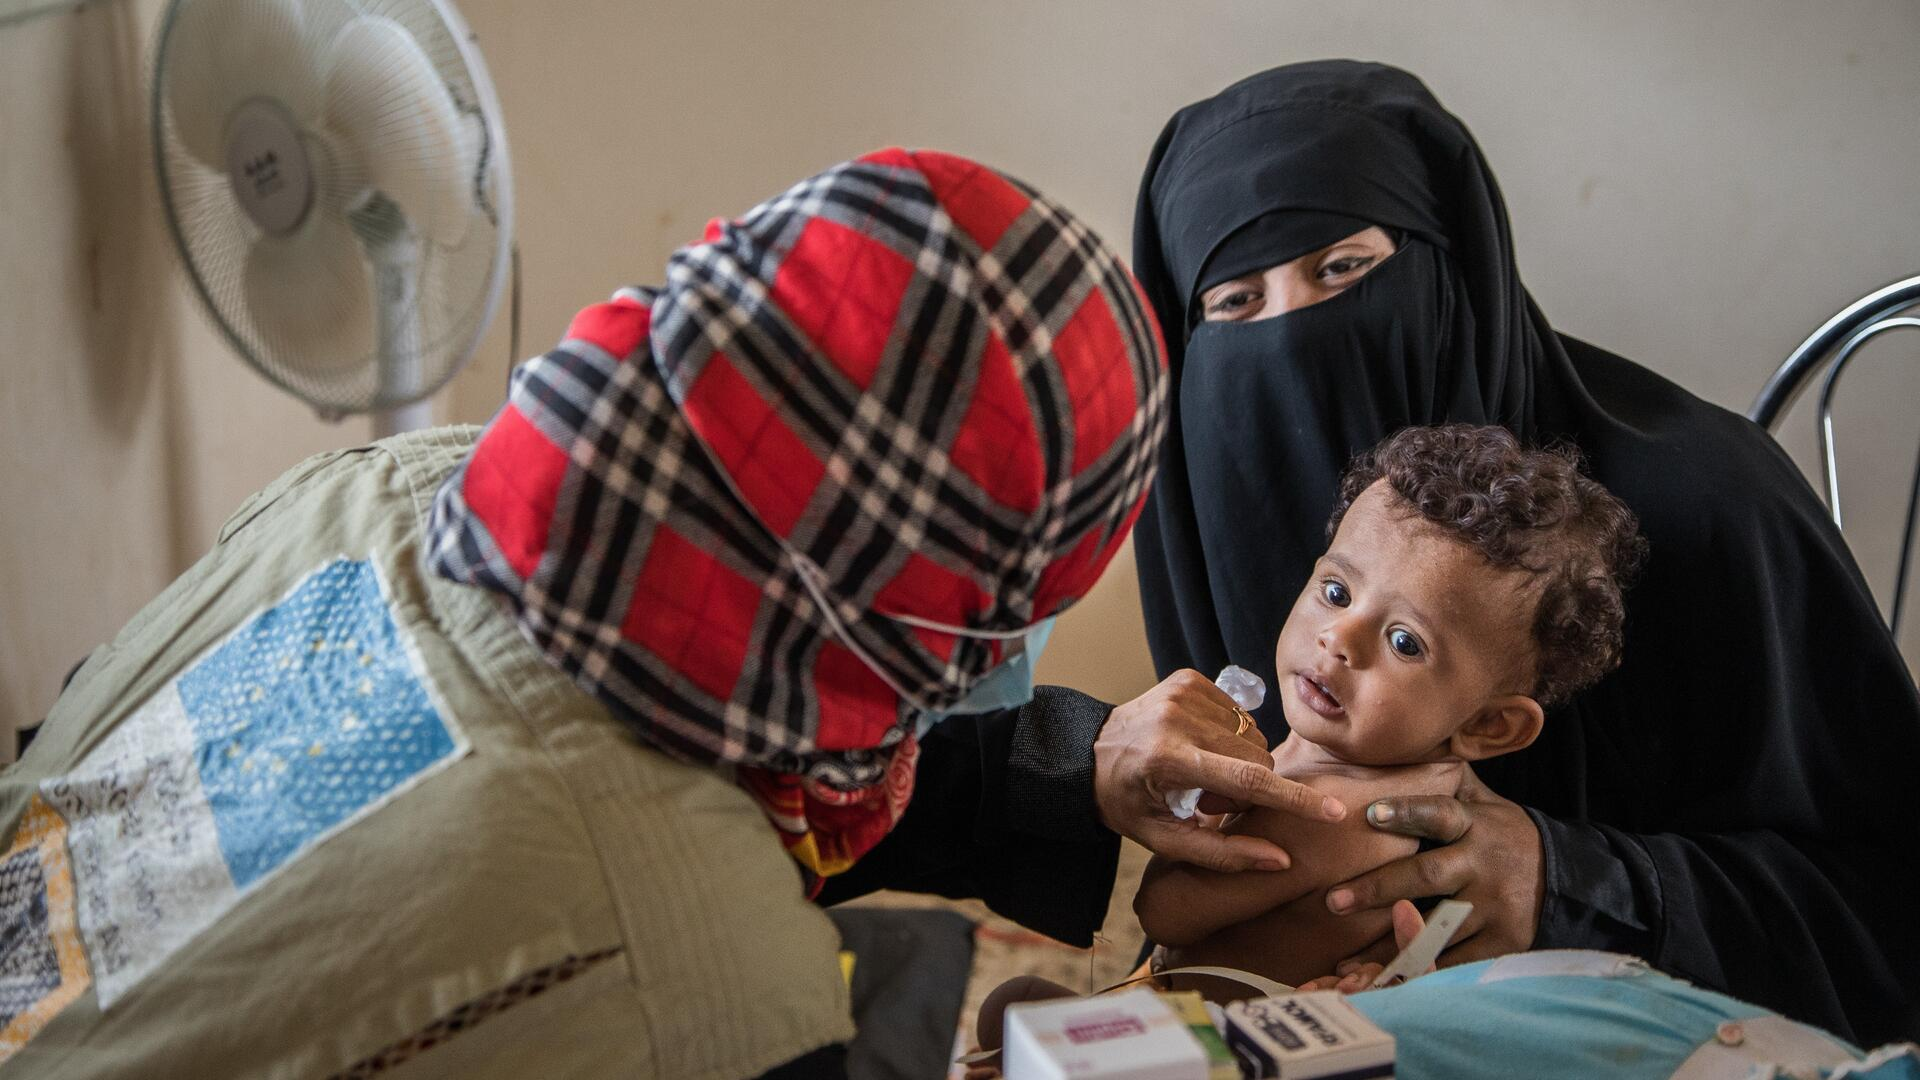 An IRC health worker examines a child in Yemen for malnutrition as his mother holds him in her arms.